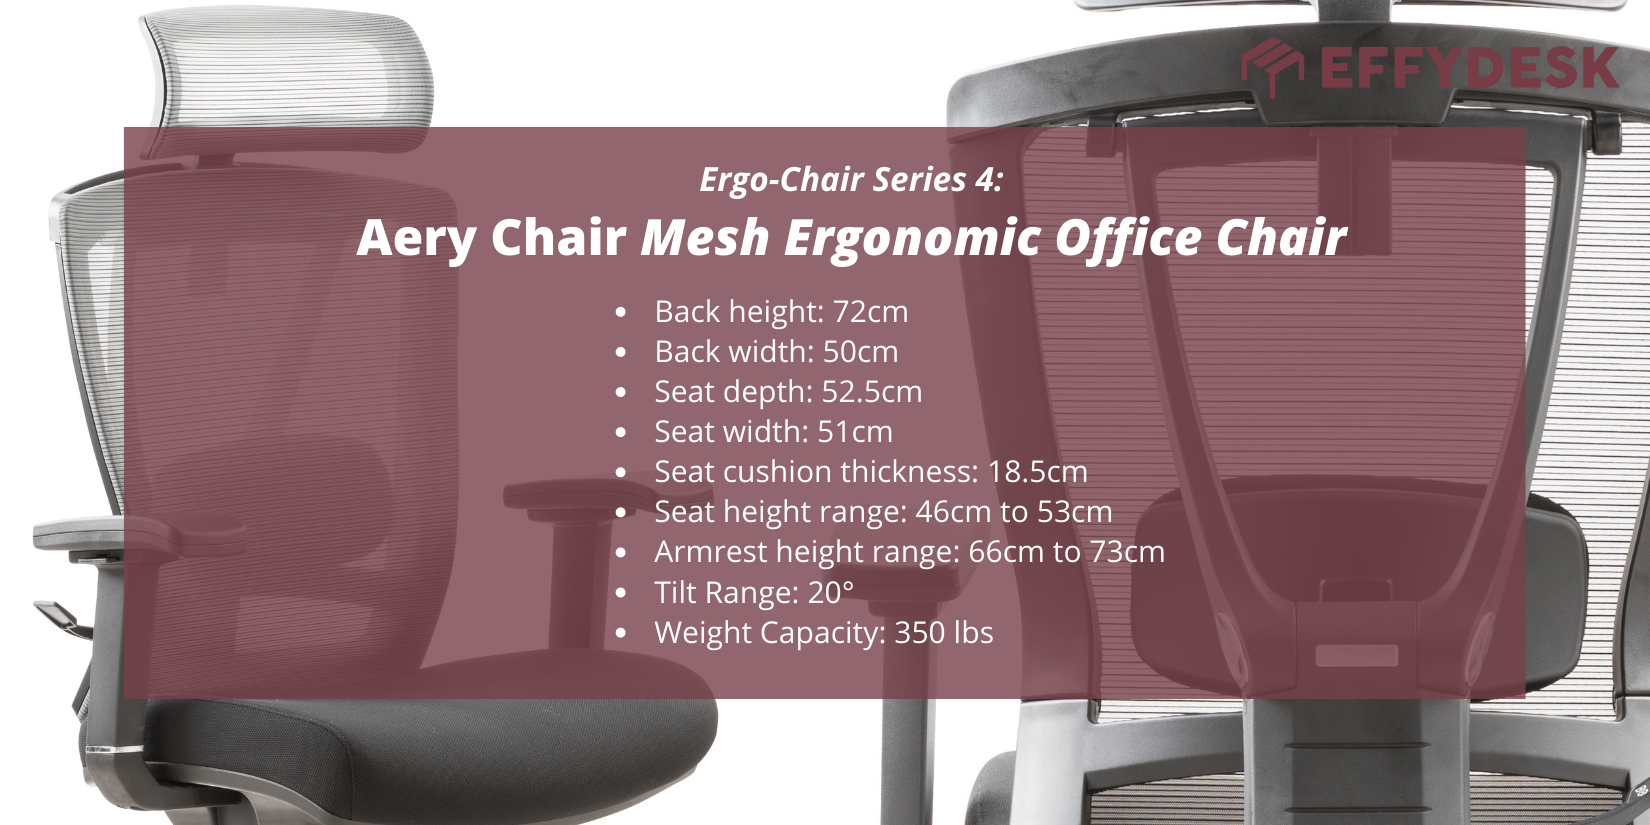 Canada's best selling ergonomic office chair for back pain, introducing effydesks series 4 aery chair